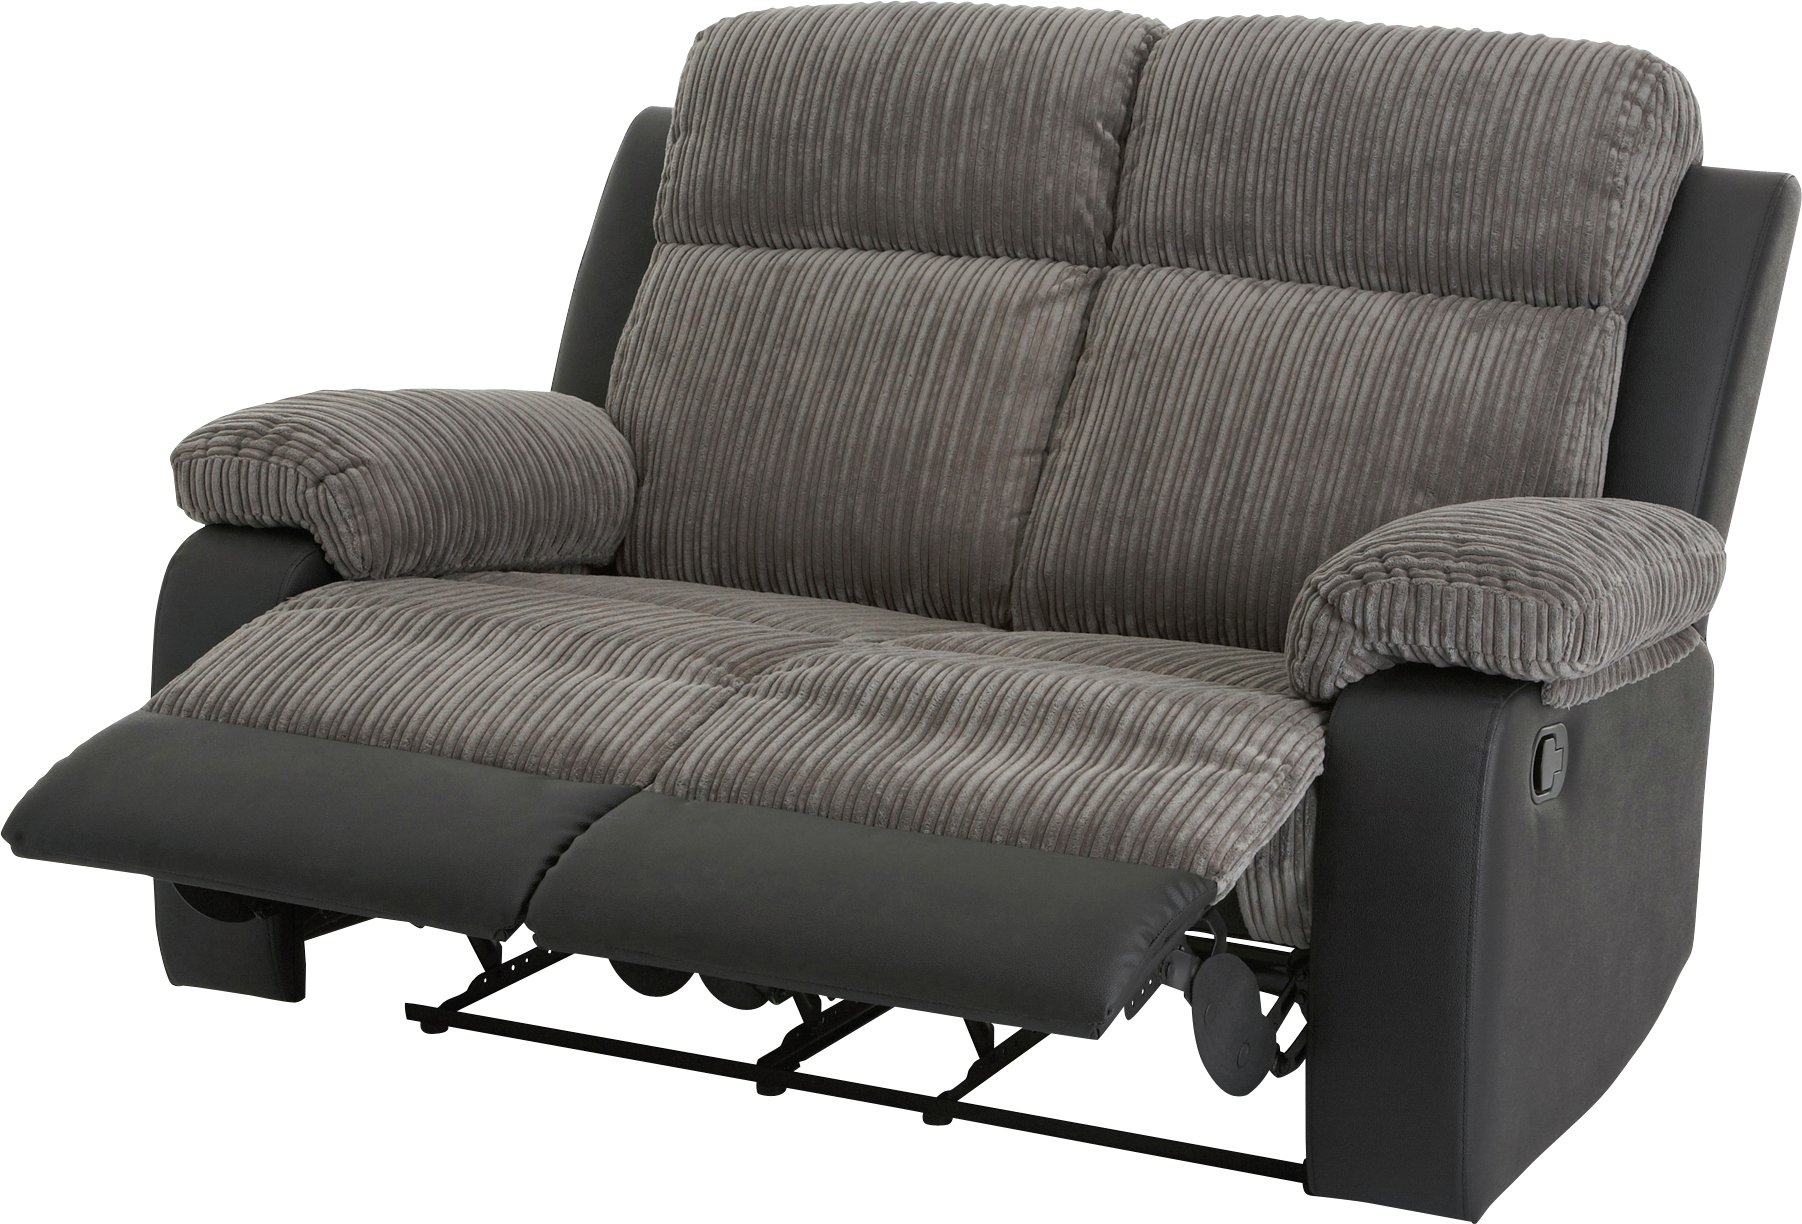 Collection Bradley Pair of 2 Seat Recliner Sofas - Charcoal